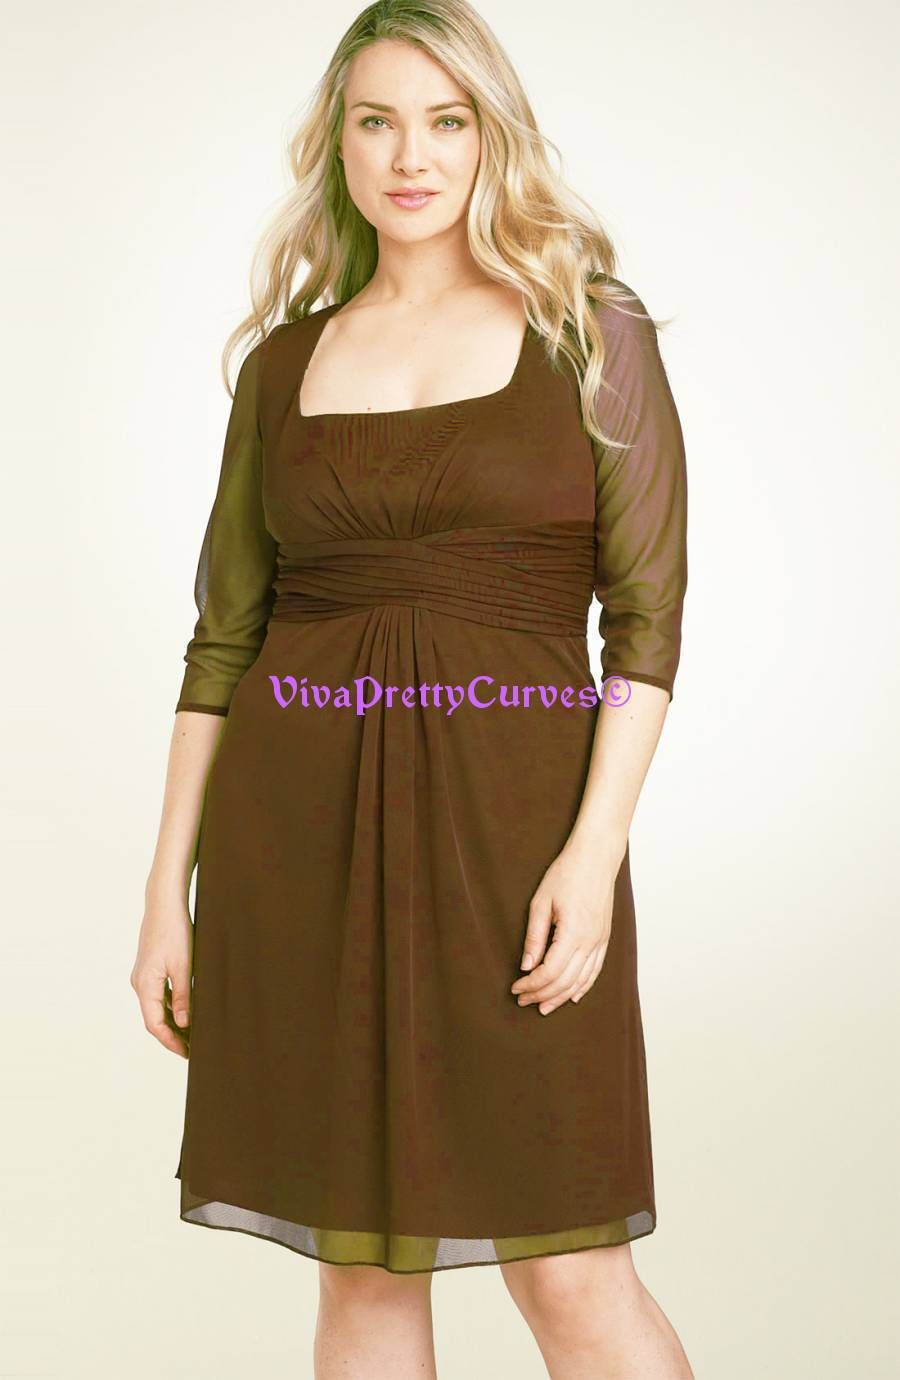 New Coco Brown 3 4 Sleeves Chiffon Cocktail Bridesmaid